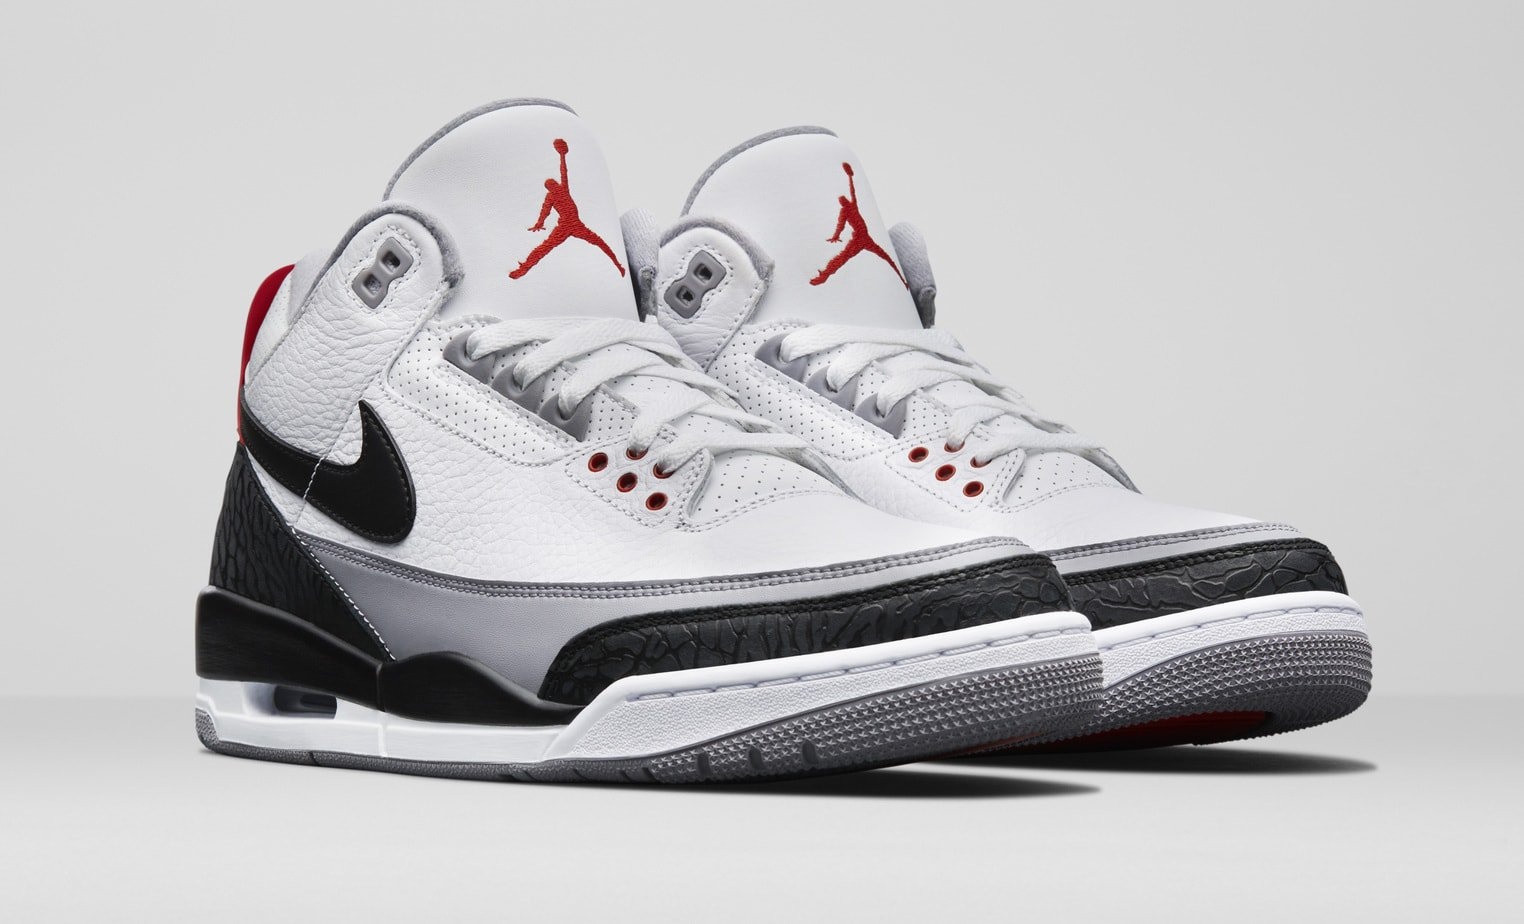 Air Jordan 3 NRG  Tinker  Release Info   JustFreshKicks 1988 was a enormous year for for Michael Jordan  Having won the Dunk  Contest  as well as both MVP and Defensive Player of the Year  perhaps his  most